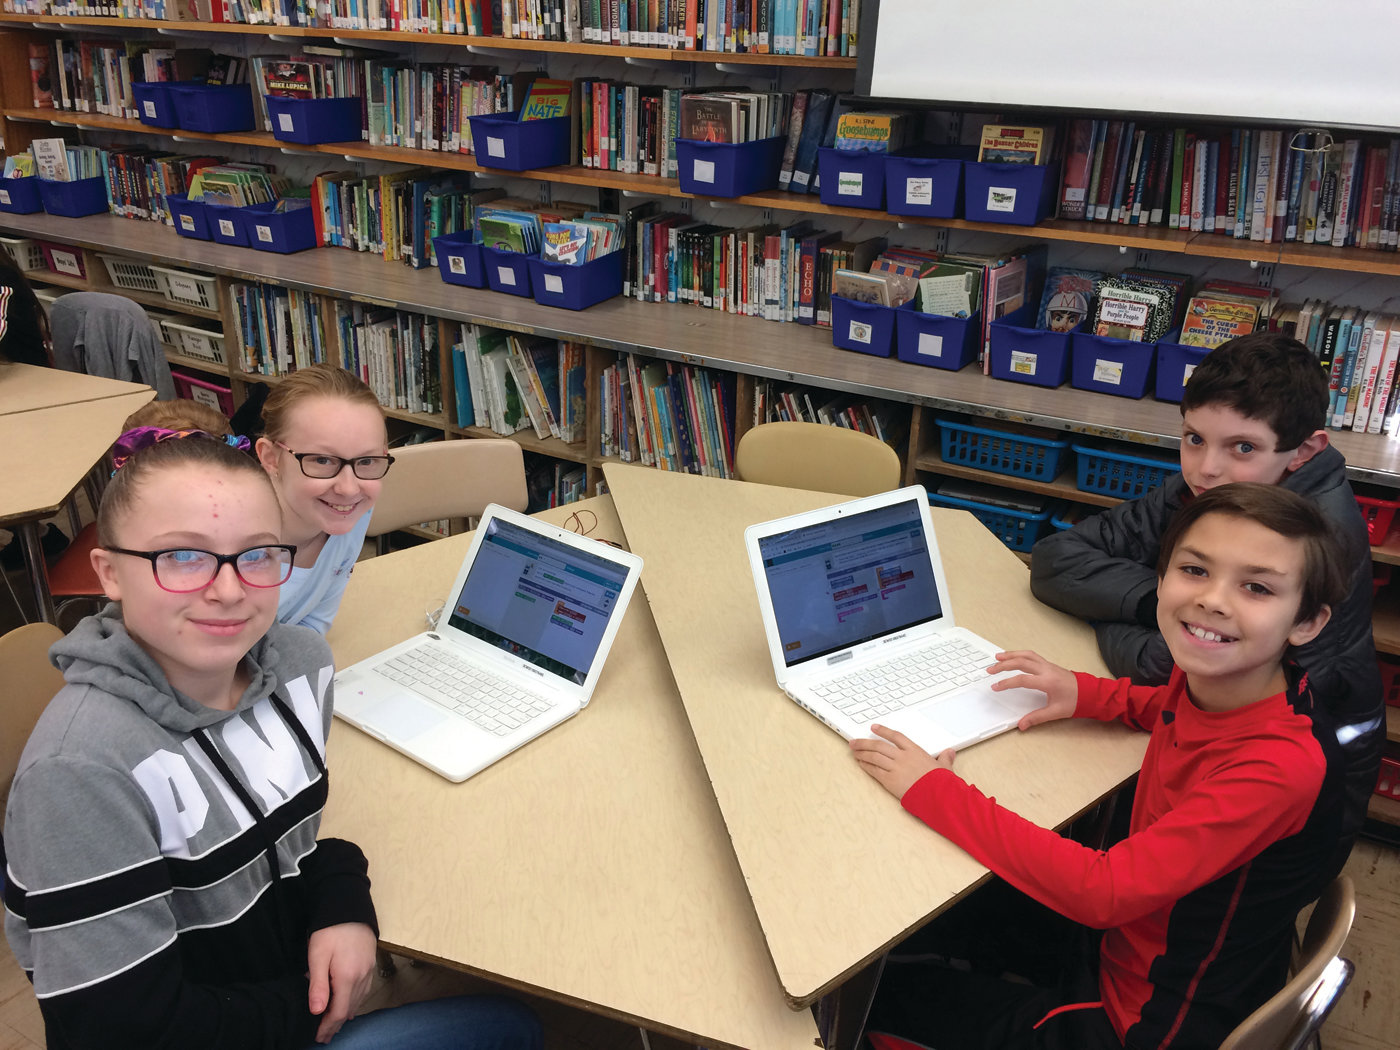 WIZ KIDS: Woodridge students enjoy computational thinking challenges, which are now second nature to them.